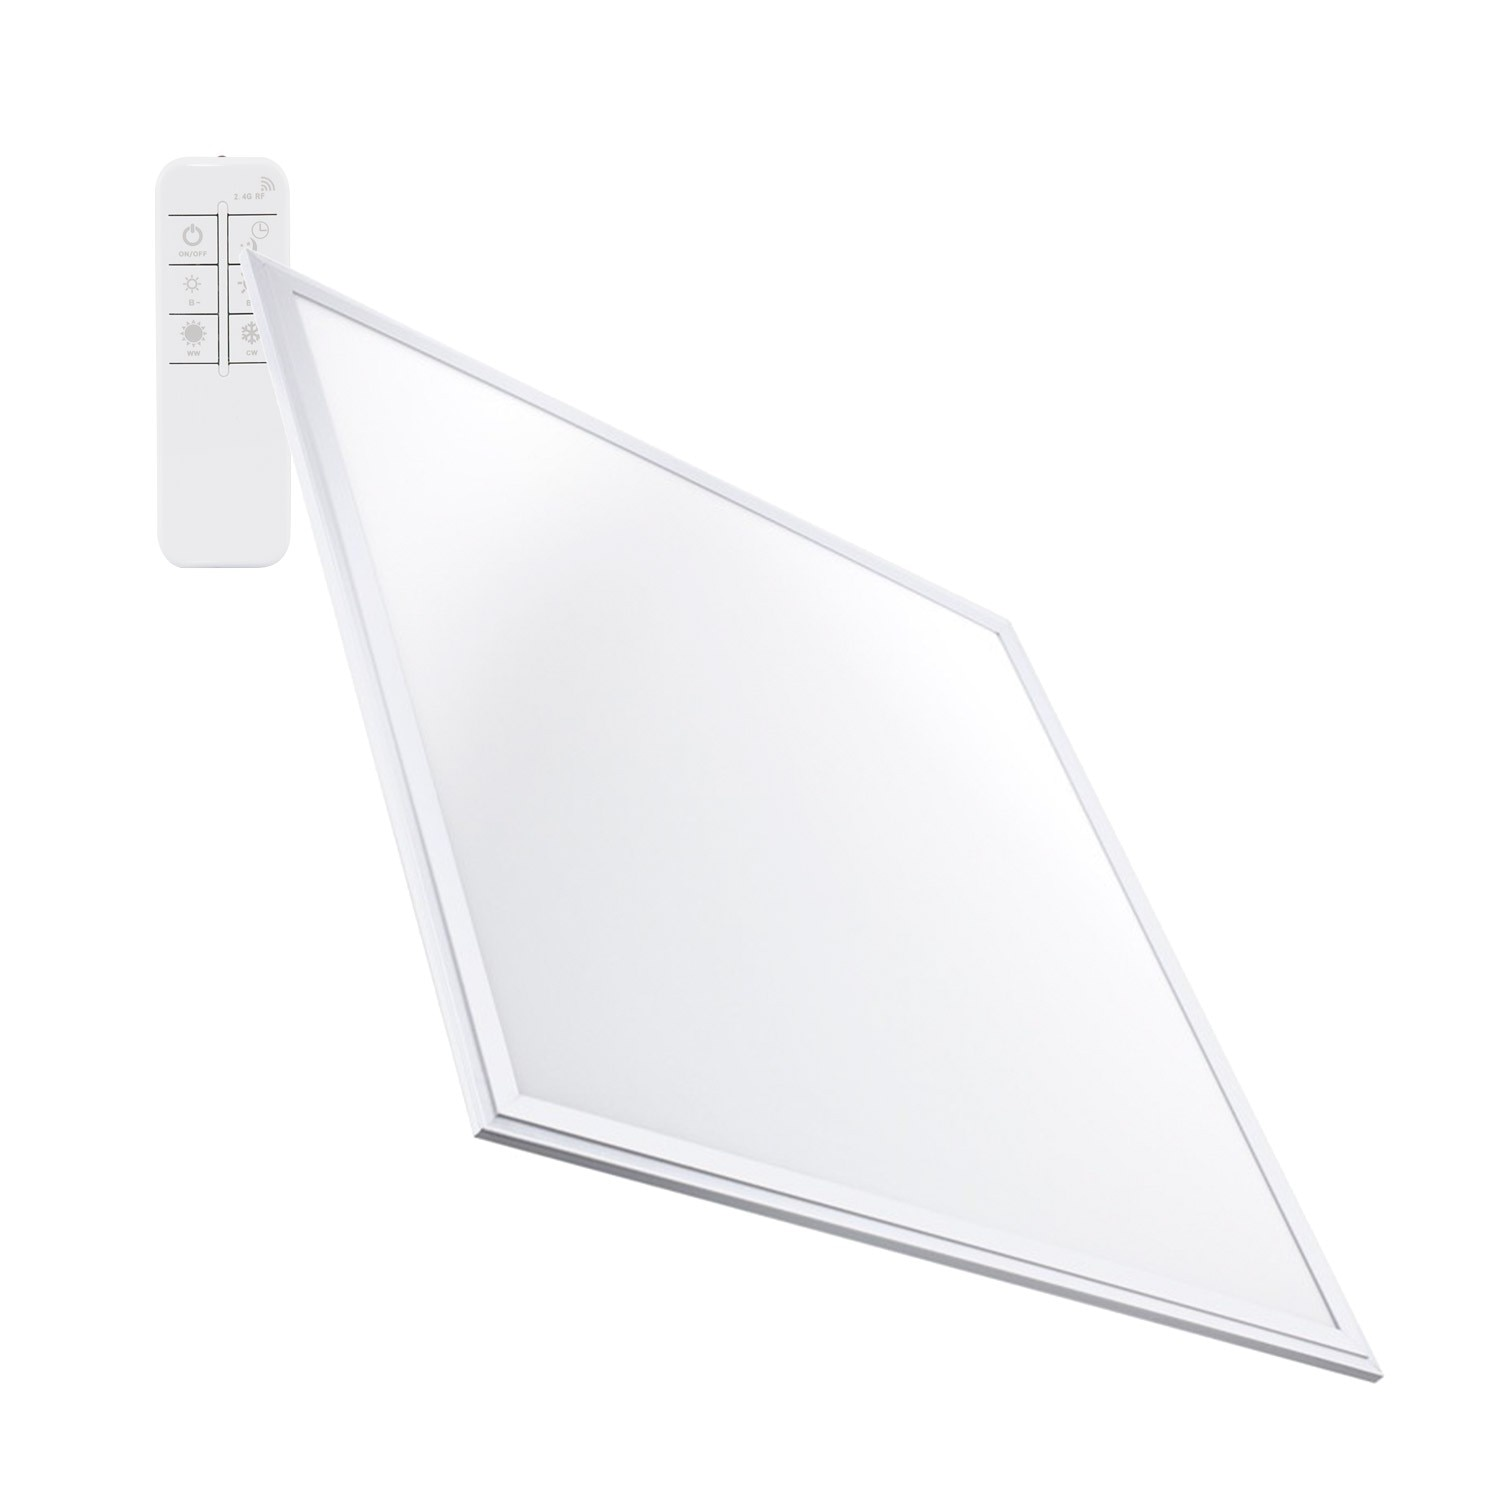 Panel LED Tª Color Seleccionable 60x60cm 40W 3600lm